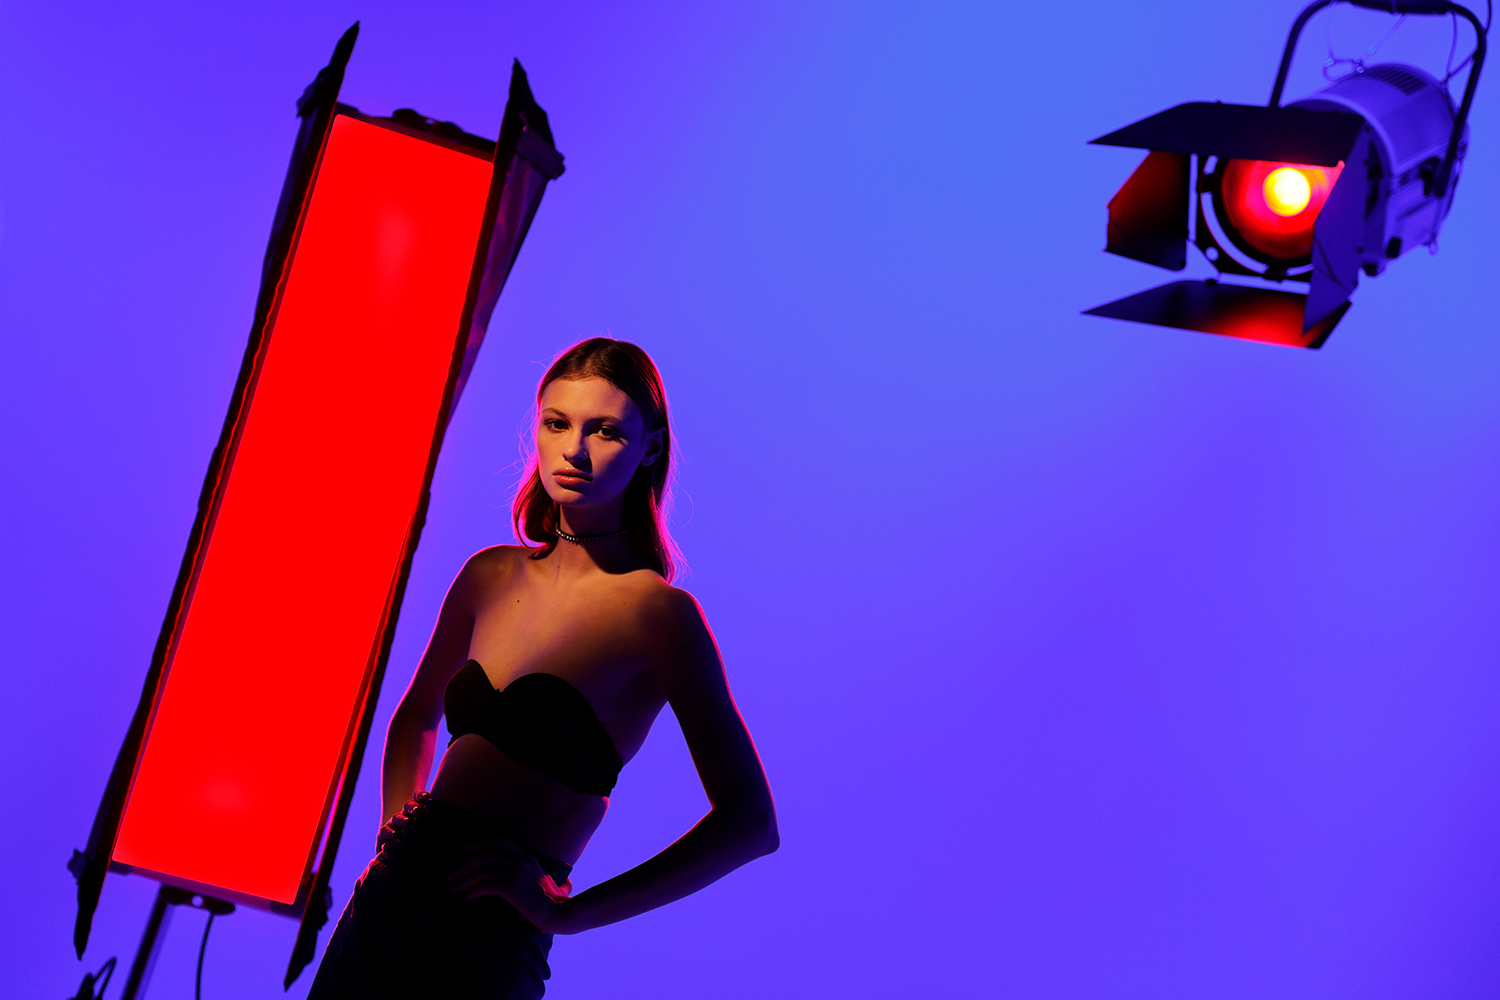 Bruce Dorn Photography, shows a woman against a purple background with red lights